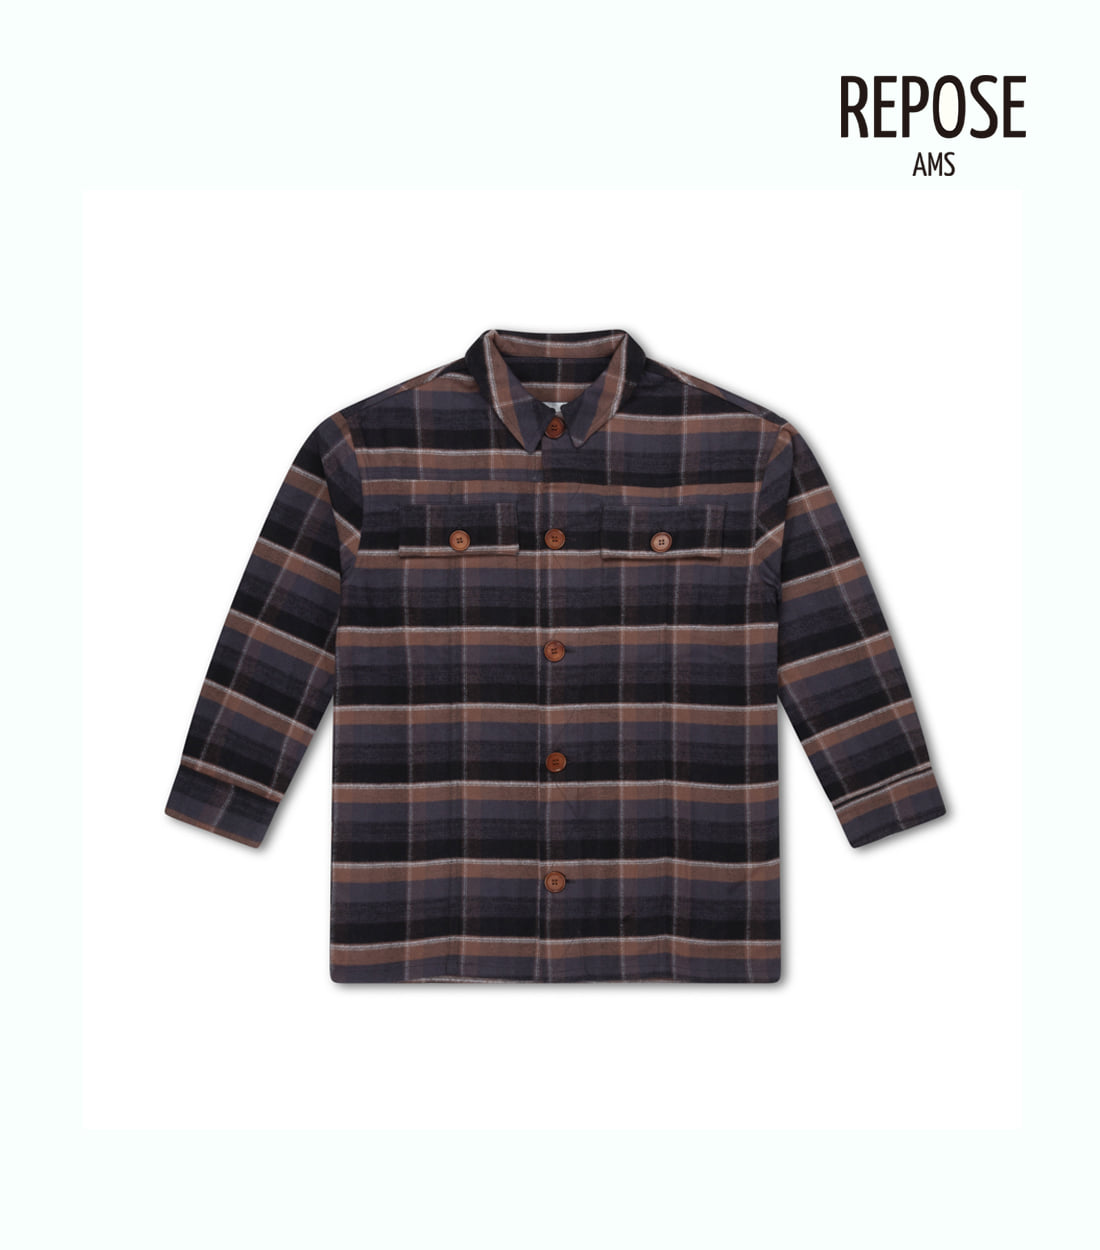 리포즈암스 SHIRT / BROWN CHECK